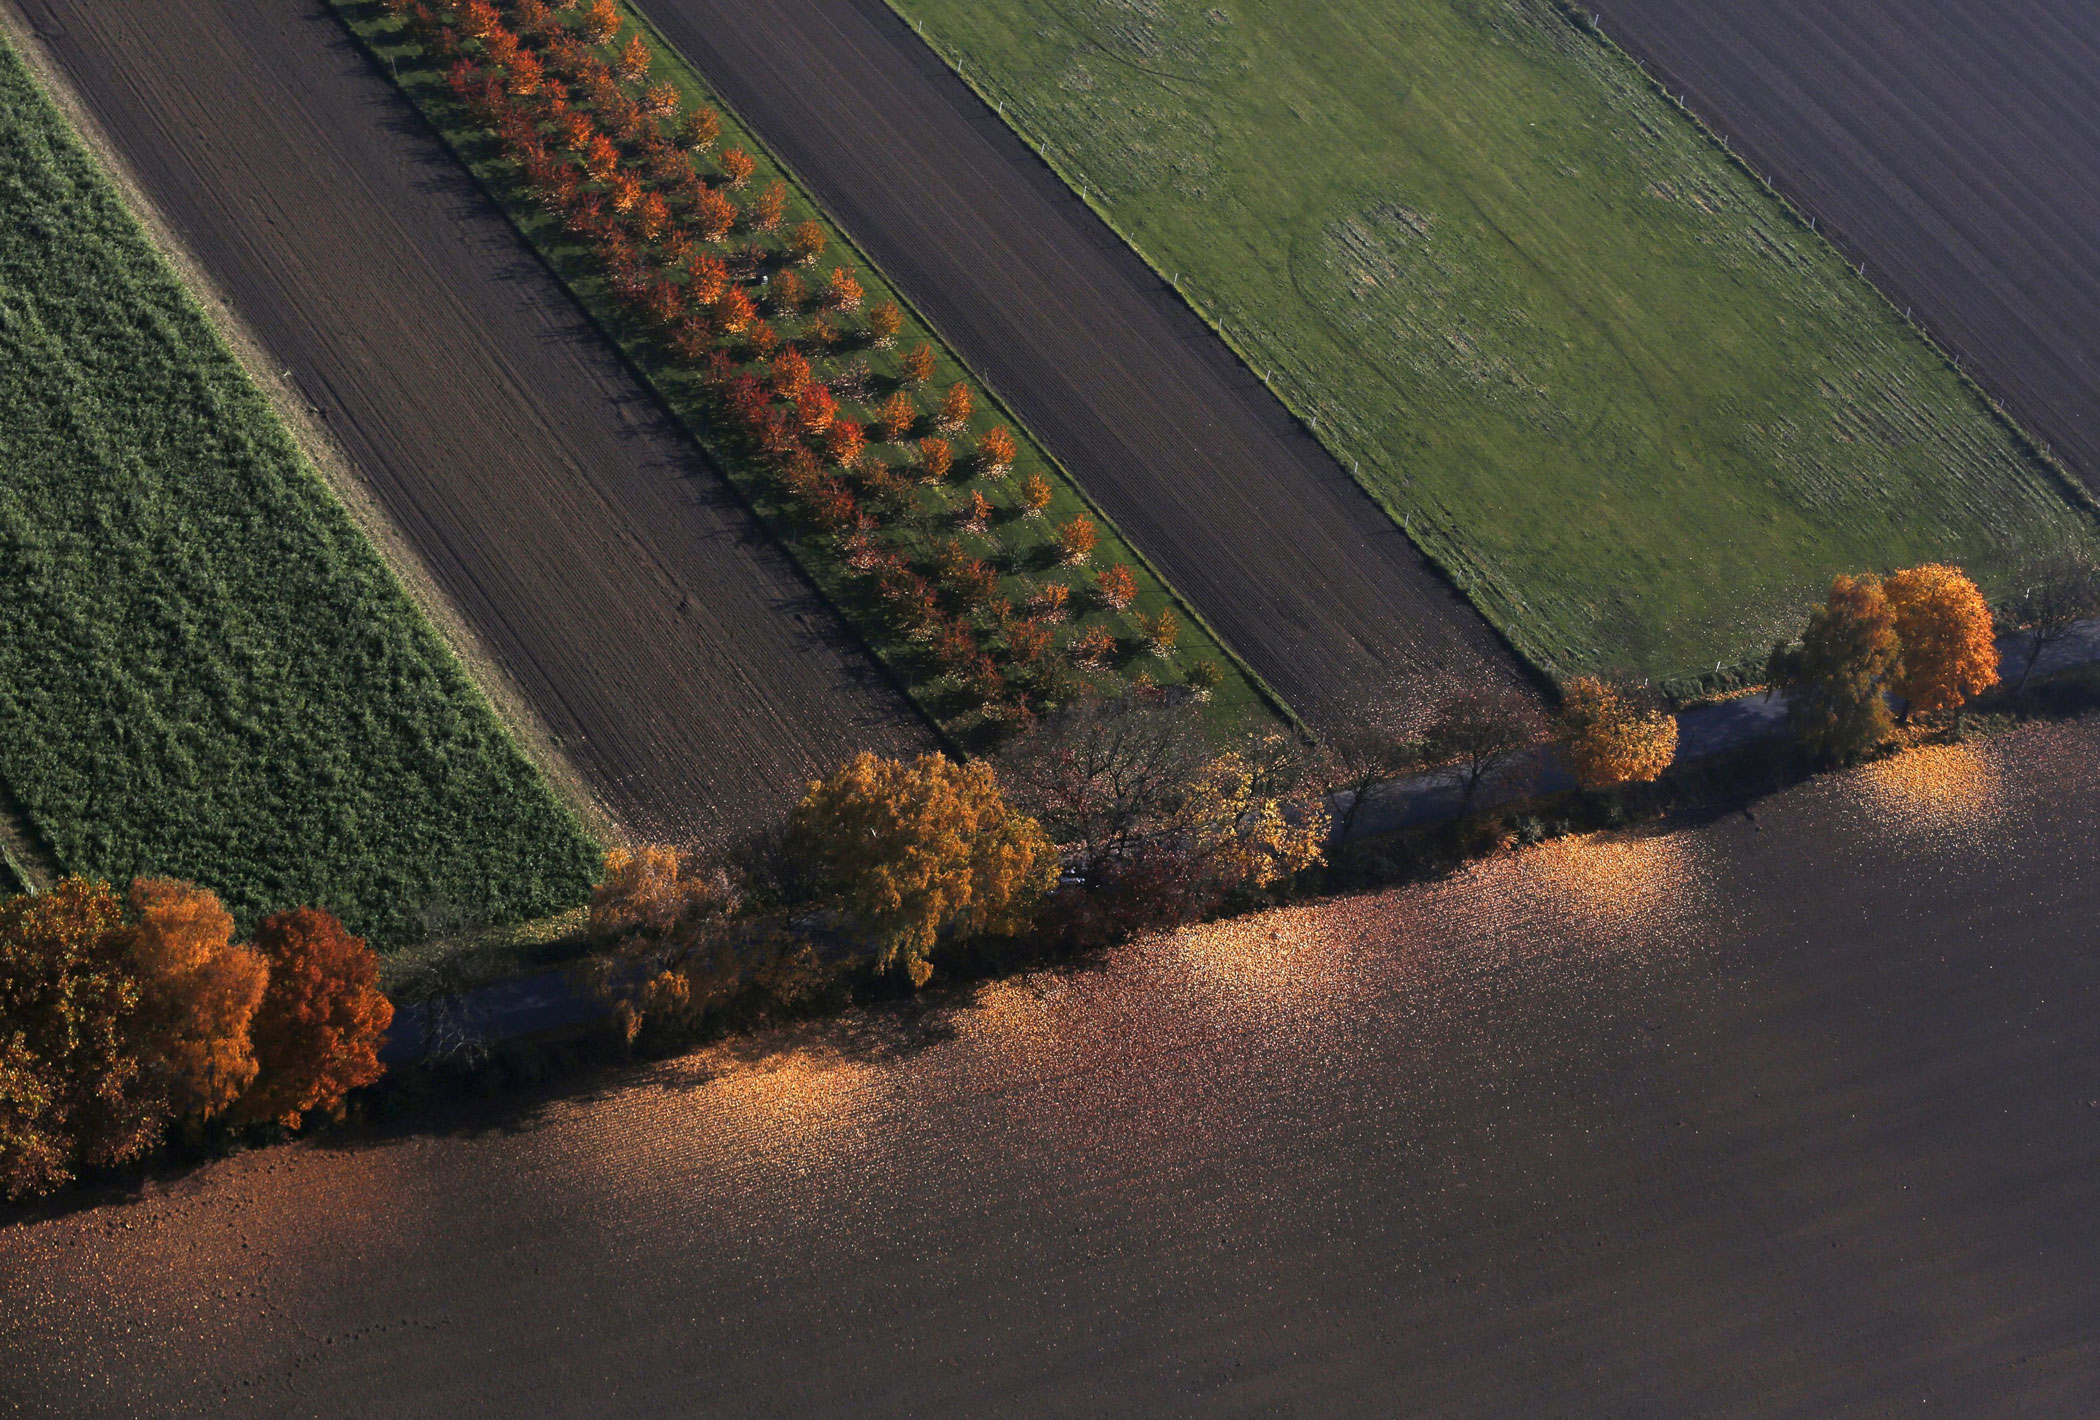 An aerial view shows a field with deciduous trees on a sunny autumn day in Recklinghausen, Germany on Oct. 31, 2015.